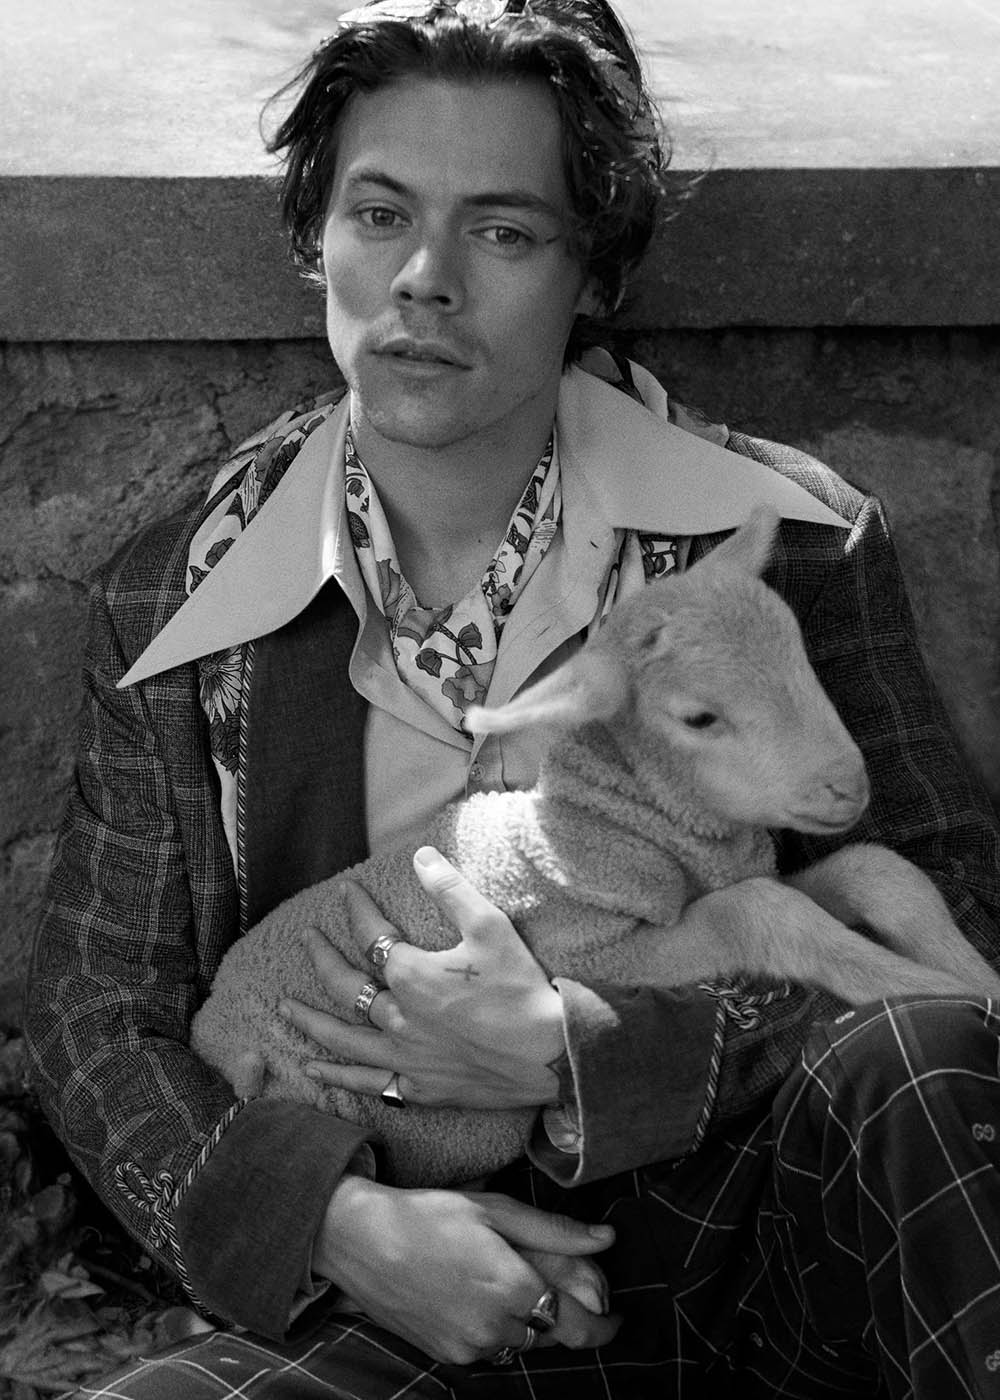 Gucci Cruise 2019 Men's Tailoring Campaign with Harry Styles